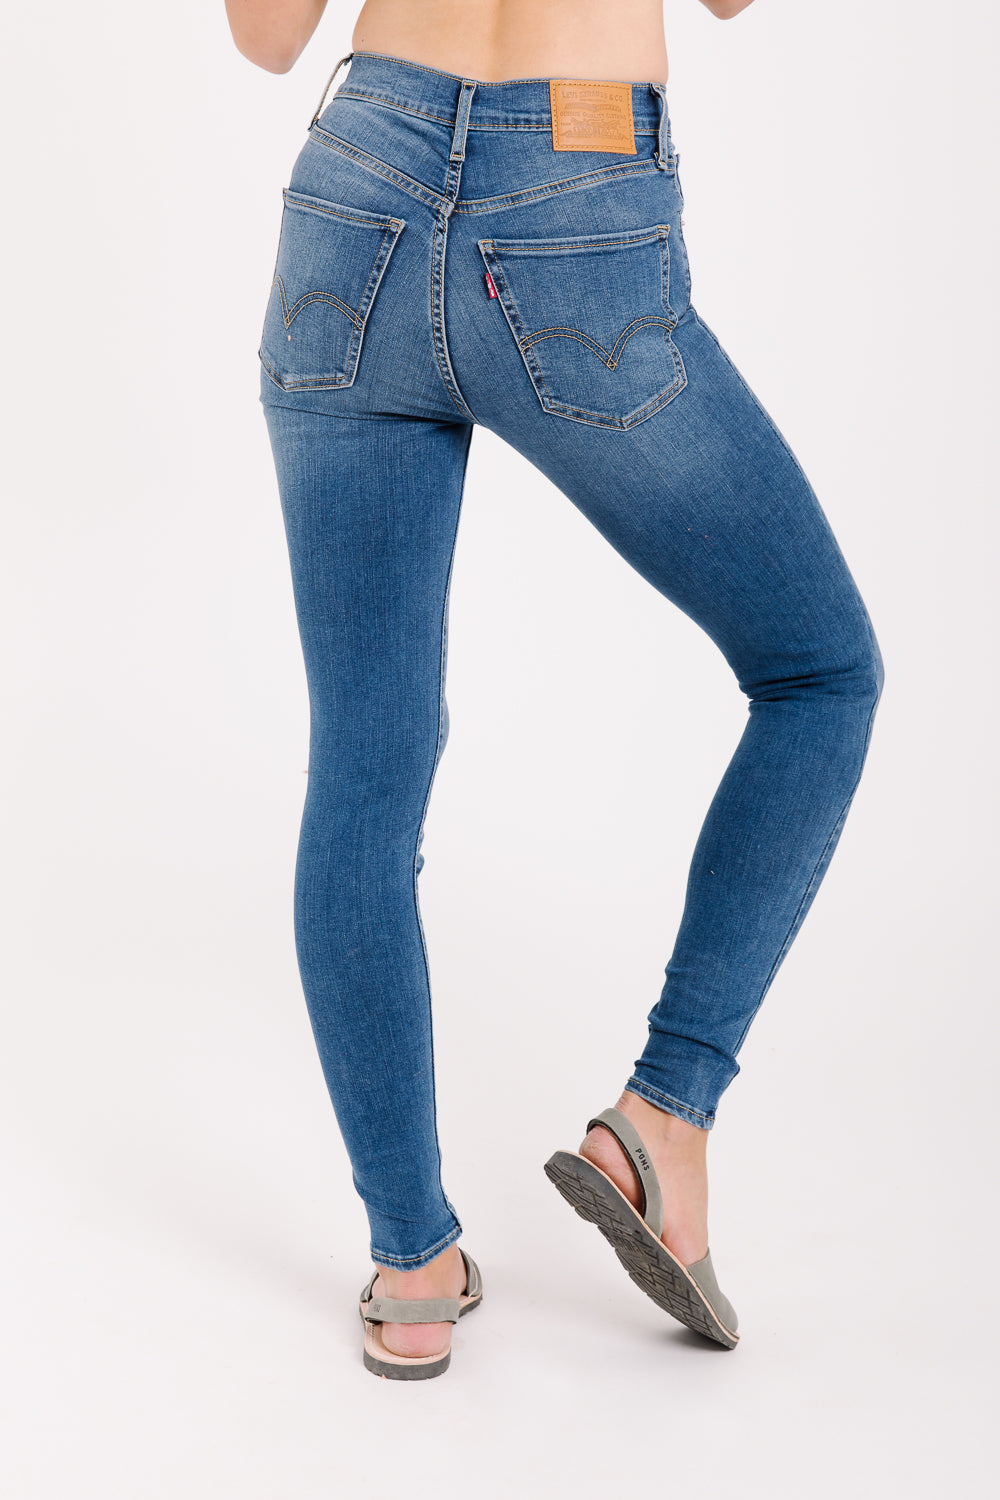 Levi's: Mile High Super Skinny Jeans in Shut The Front Door